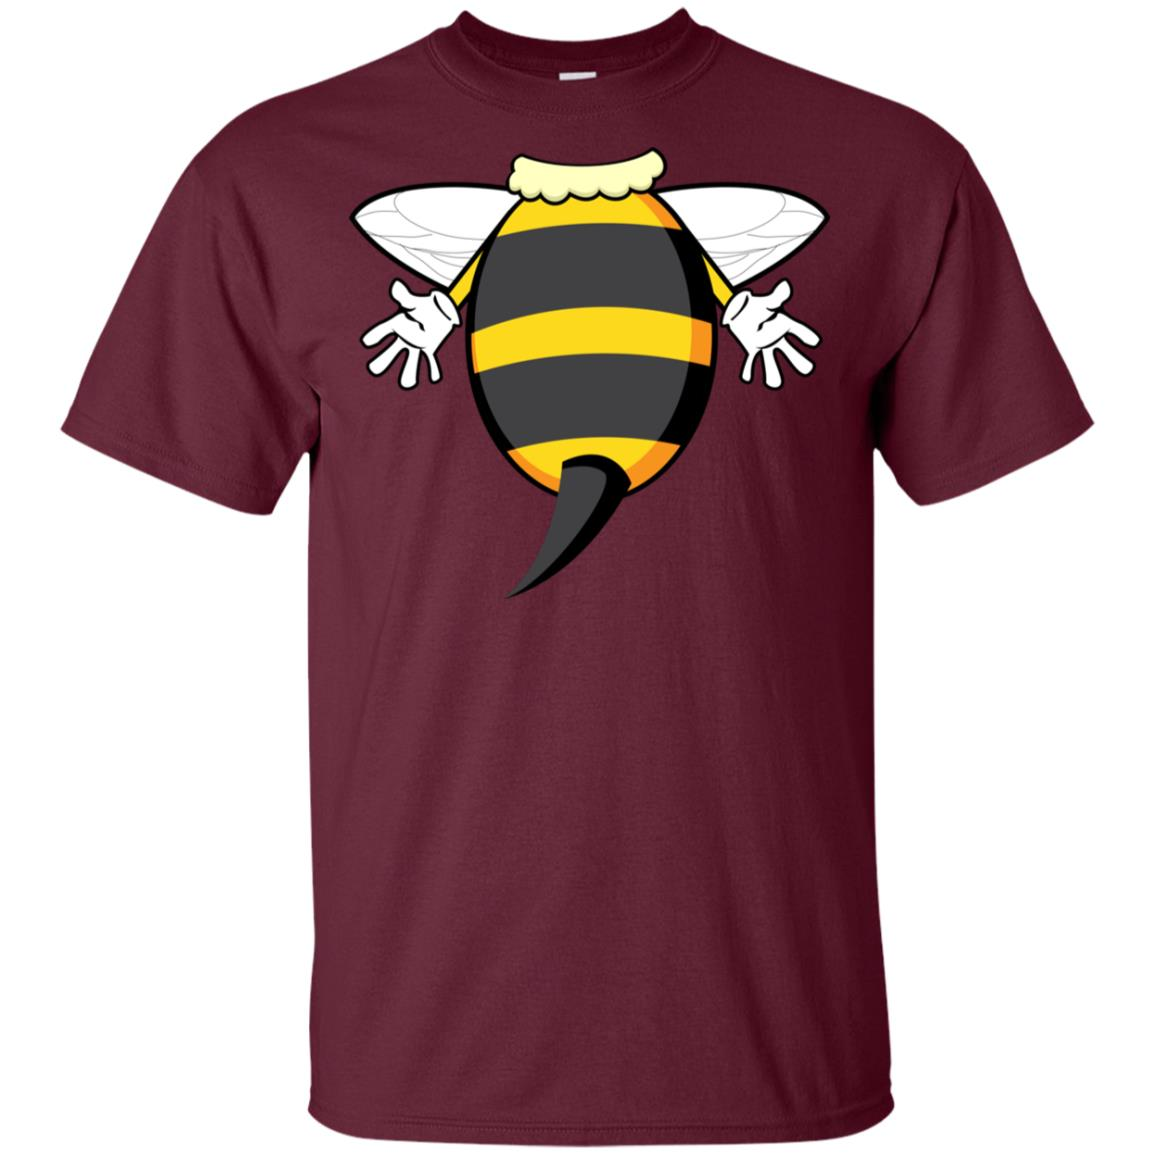 Funny Bee Costume Easy – Honeybee Halloween Cheap Gift Youth Short Sleeve